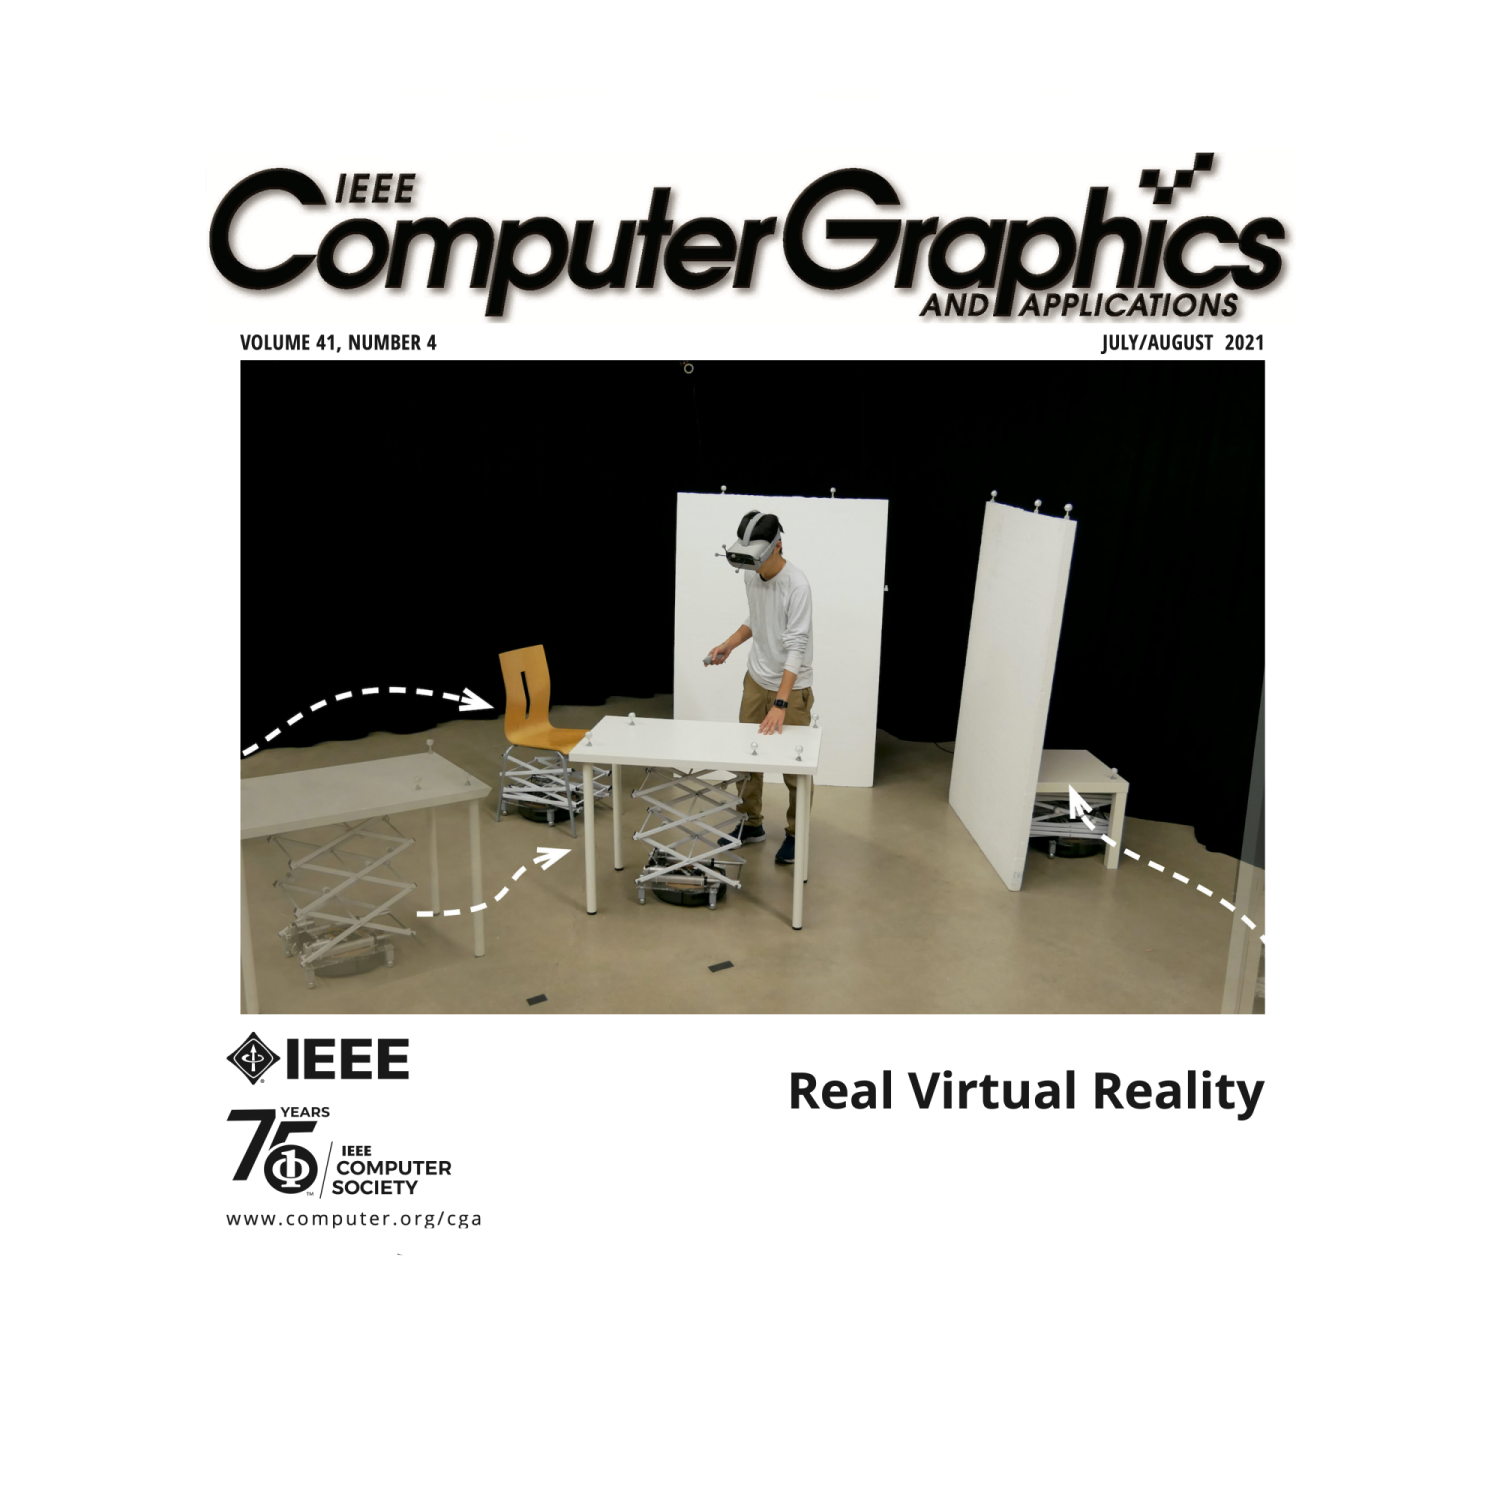 Cover of IEEE magazine showing Ryo Suzuki with a VR headset on touching a table that has the ability to move.